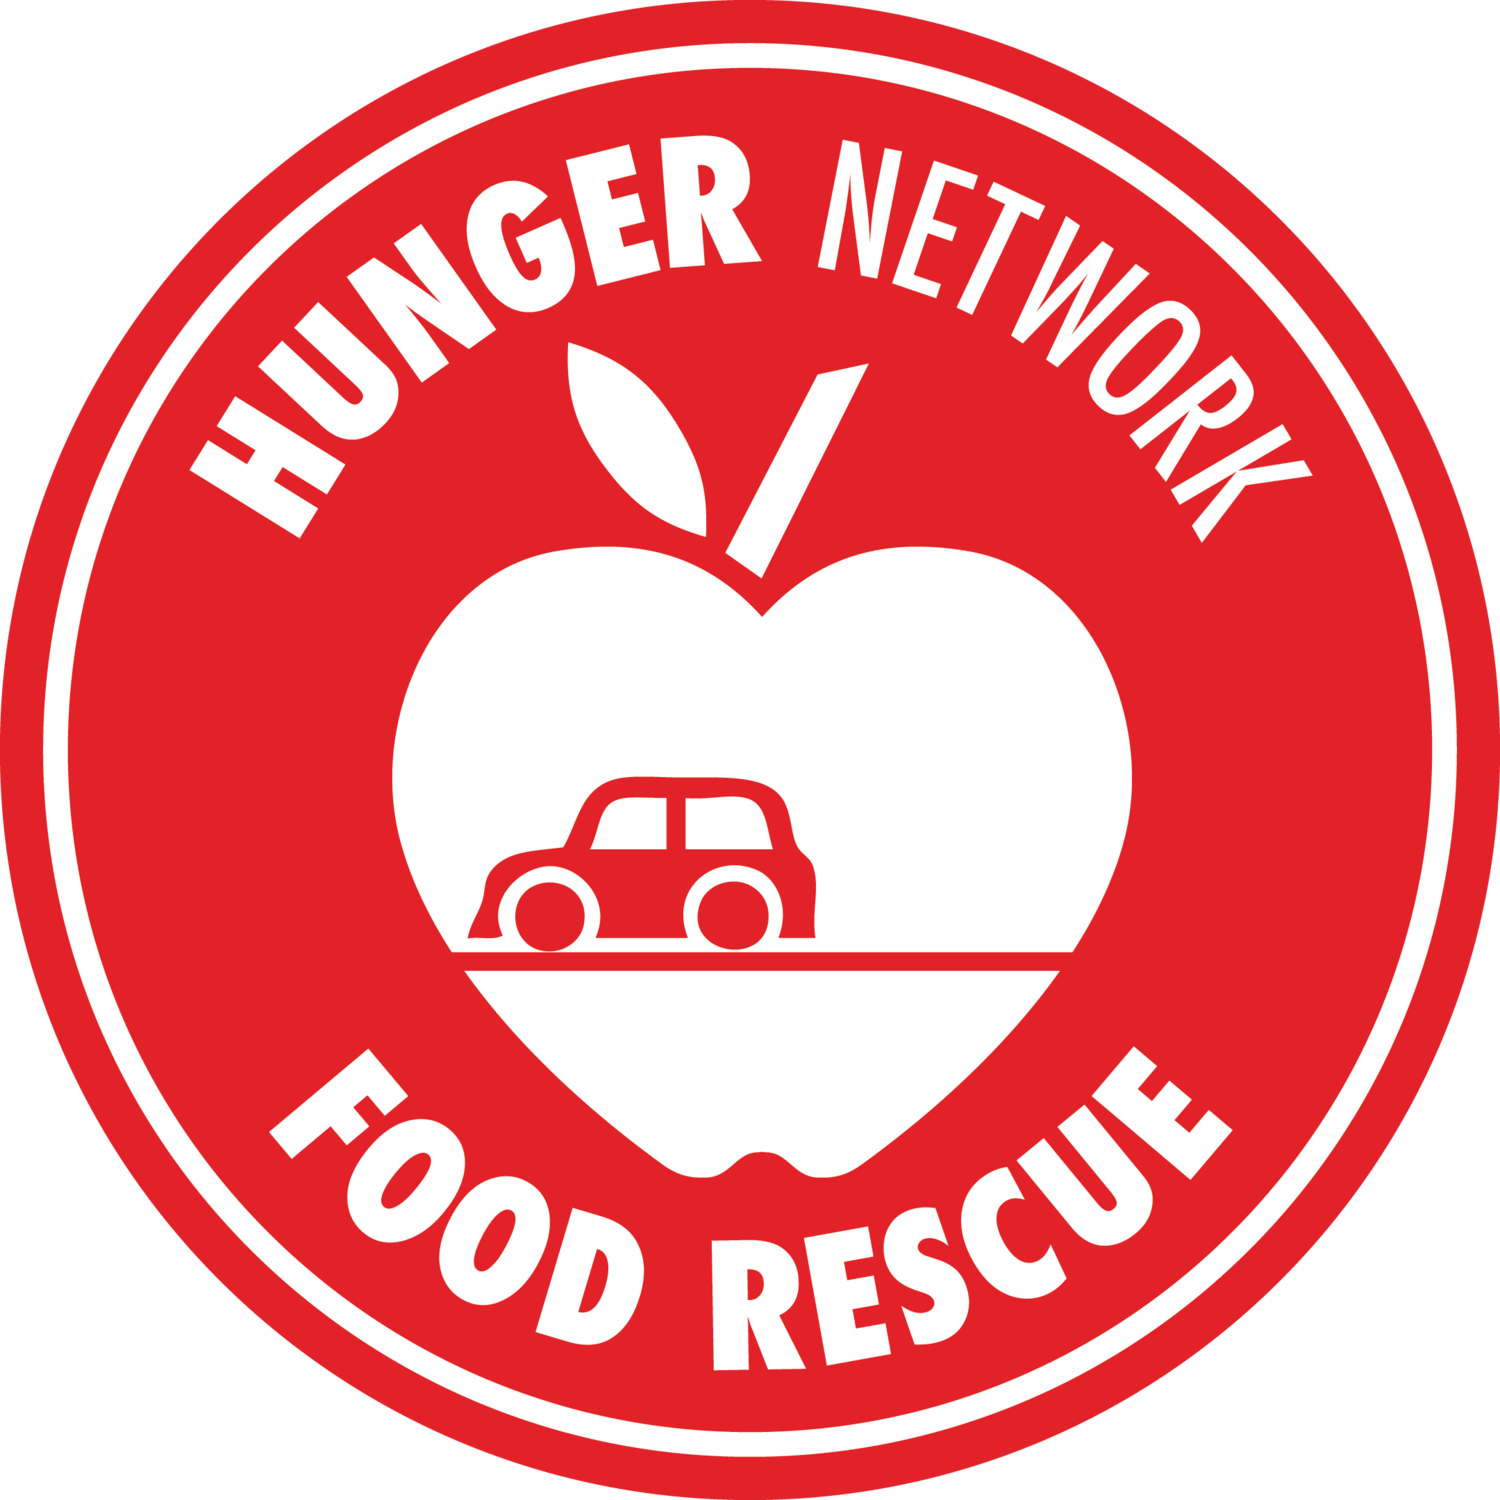 Hunger Network Food Rescue